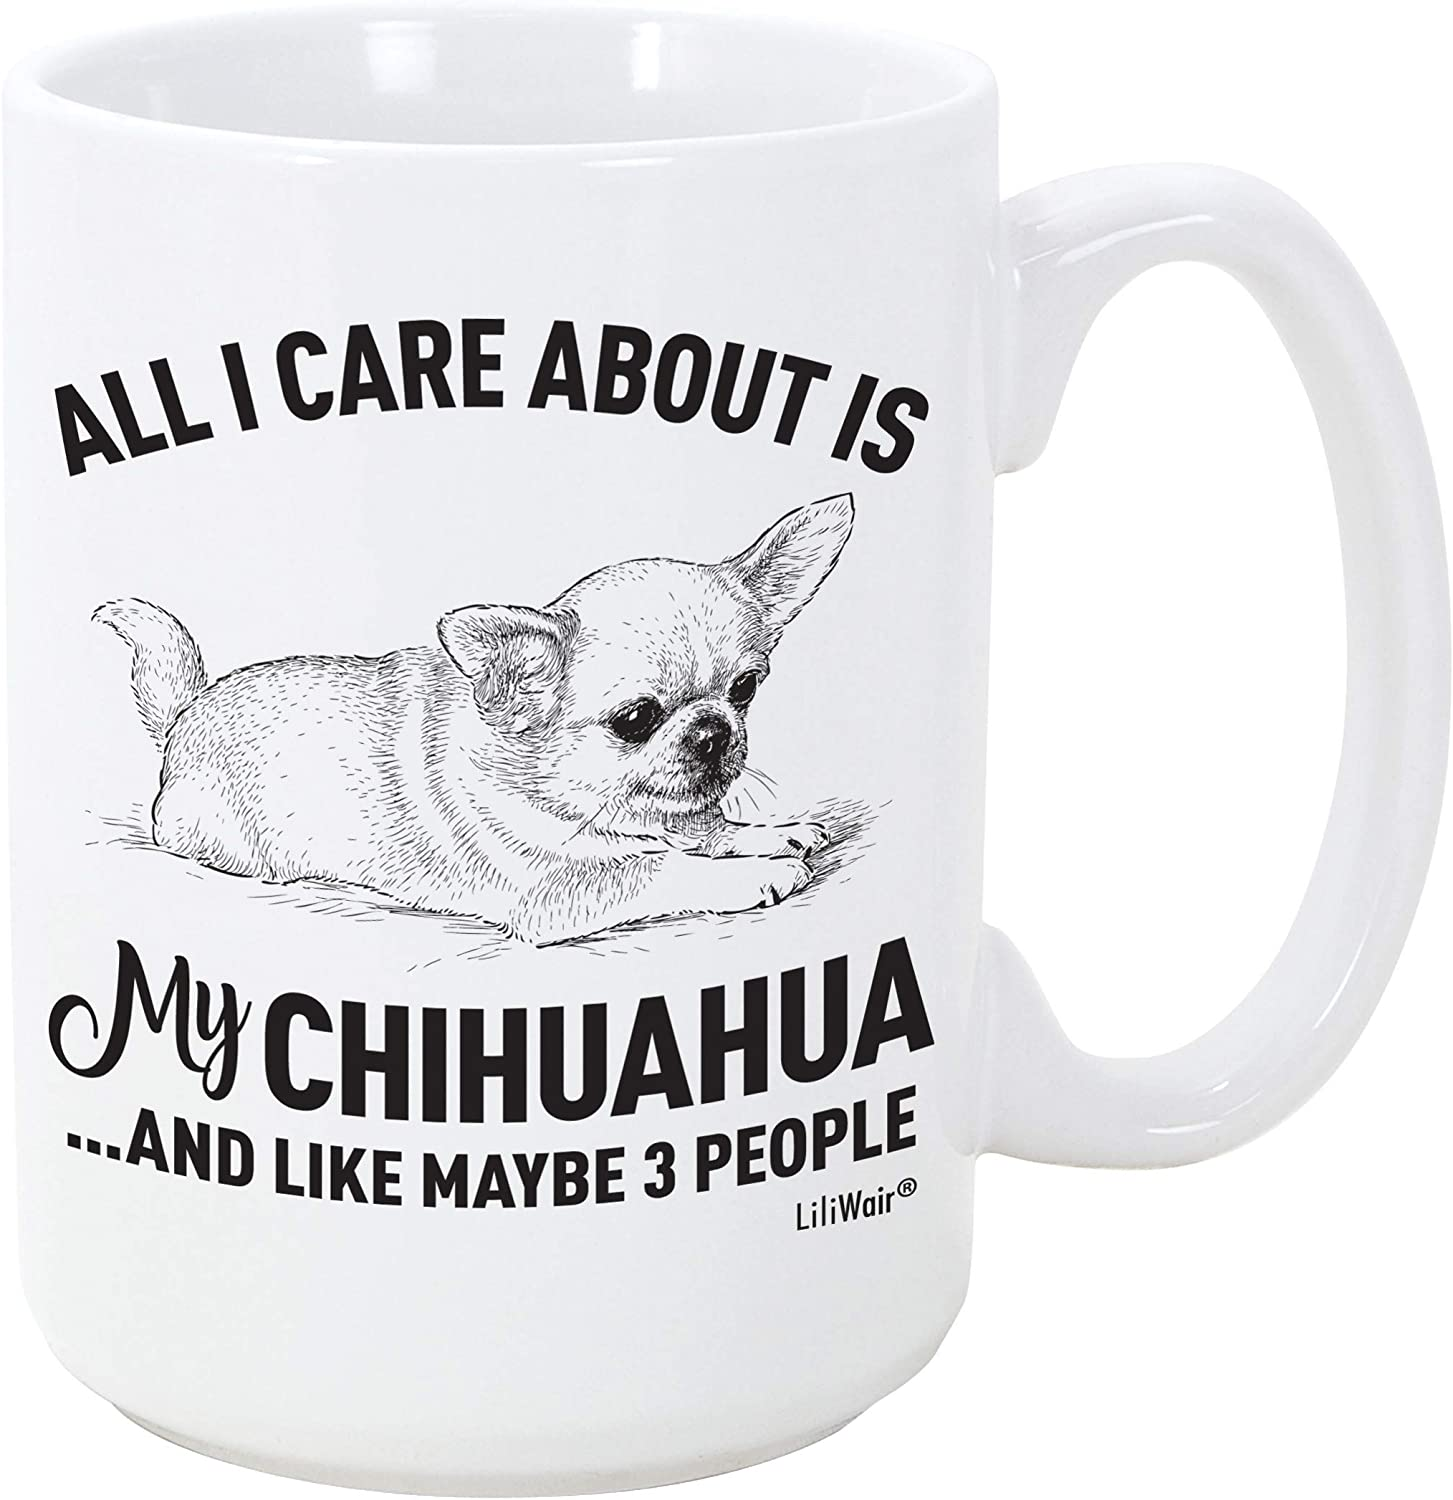 Chihuahua Mom Gifts Mugs For Christmas Women Men Dad Decor Lover Decorations Stuff I Love Chihuahua Coffee Accessories Talking Funny Birthday Gift Home Supplies Products Dog Coffee Cup Mugs